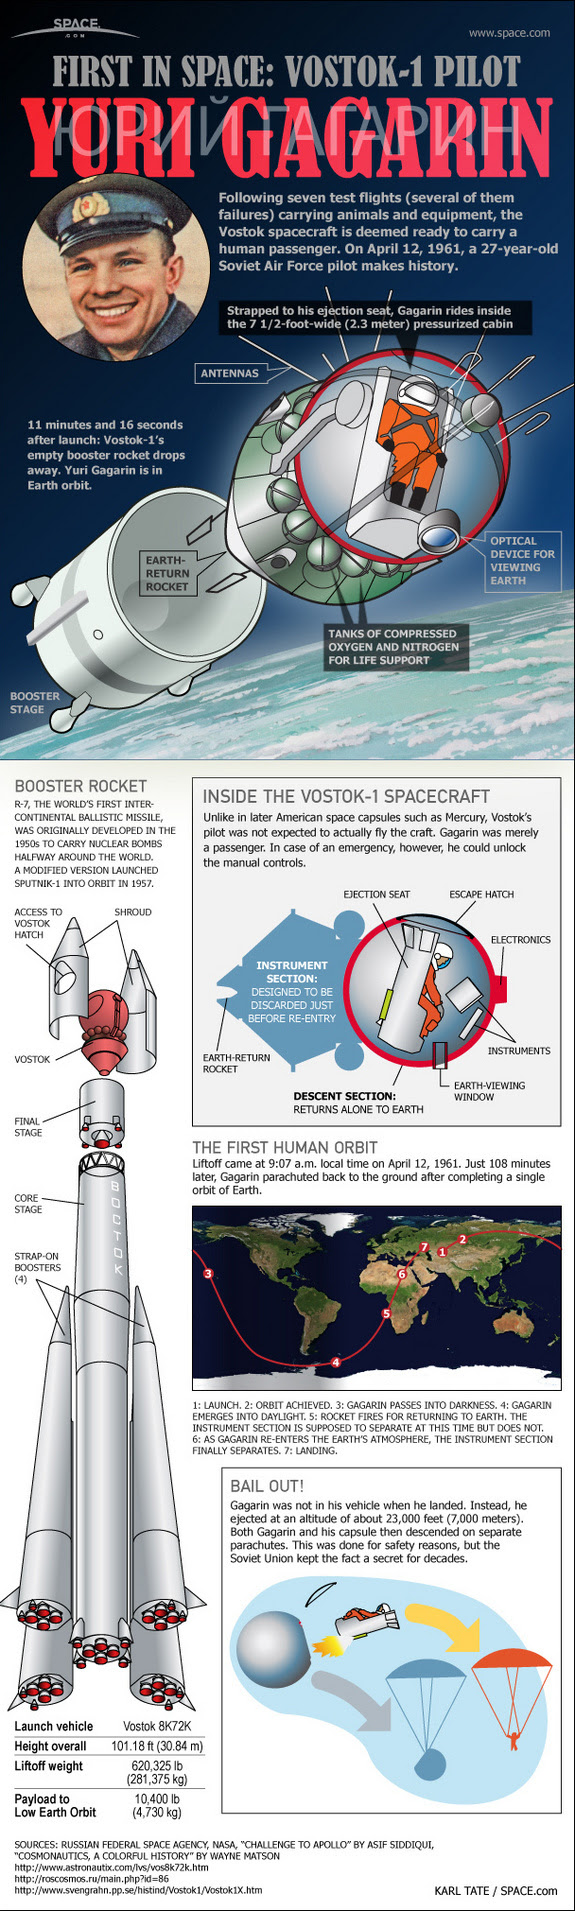 See how the first human spaceflight actually occurred when the Soviet Union launched cosmonaut Yuri Gagarin on Vostok 1 on April 12, 1961 in this SPACE.com infographic.